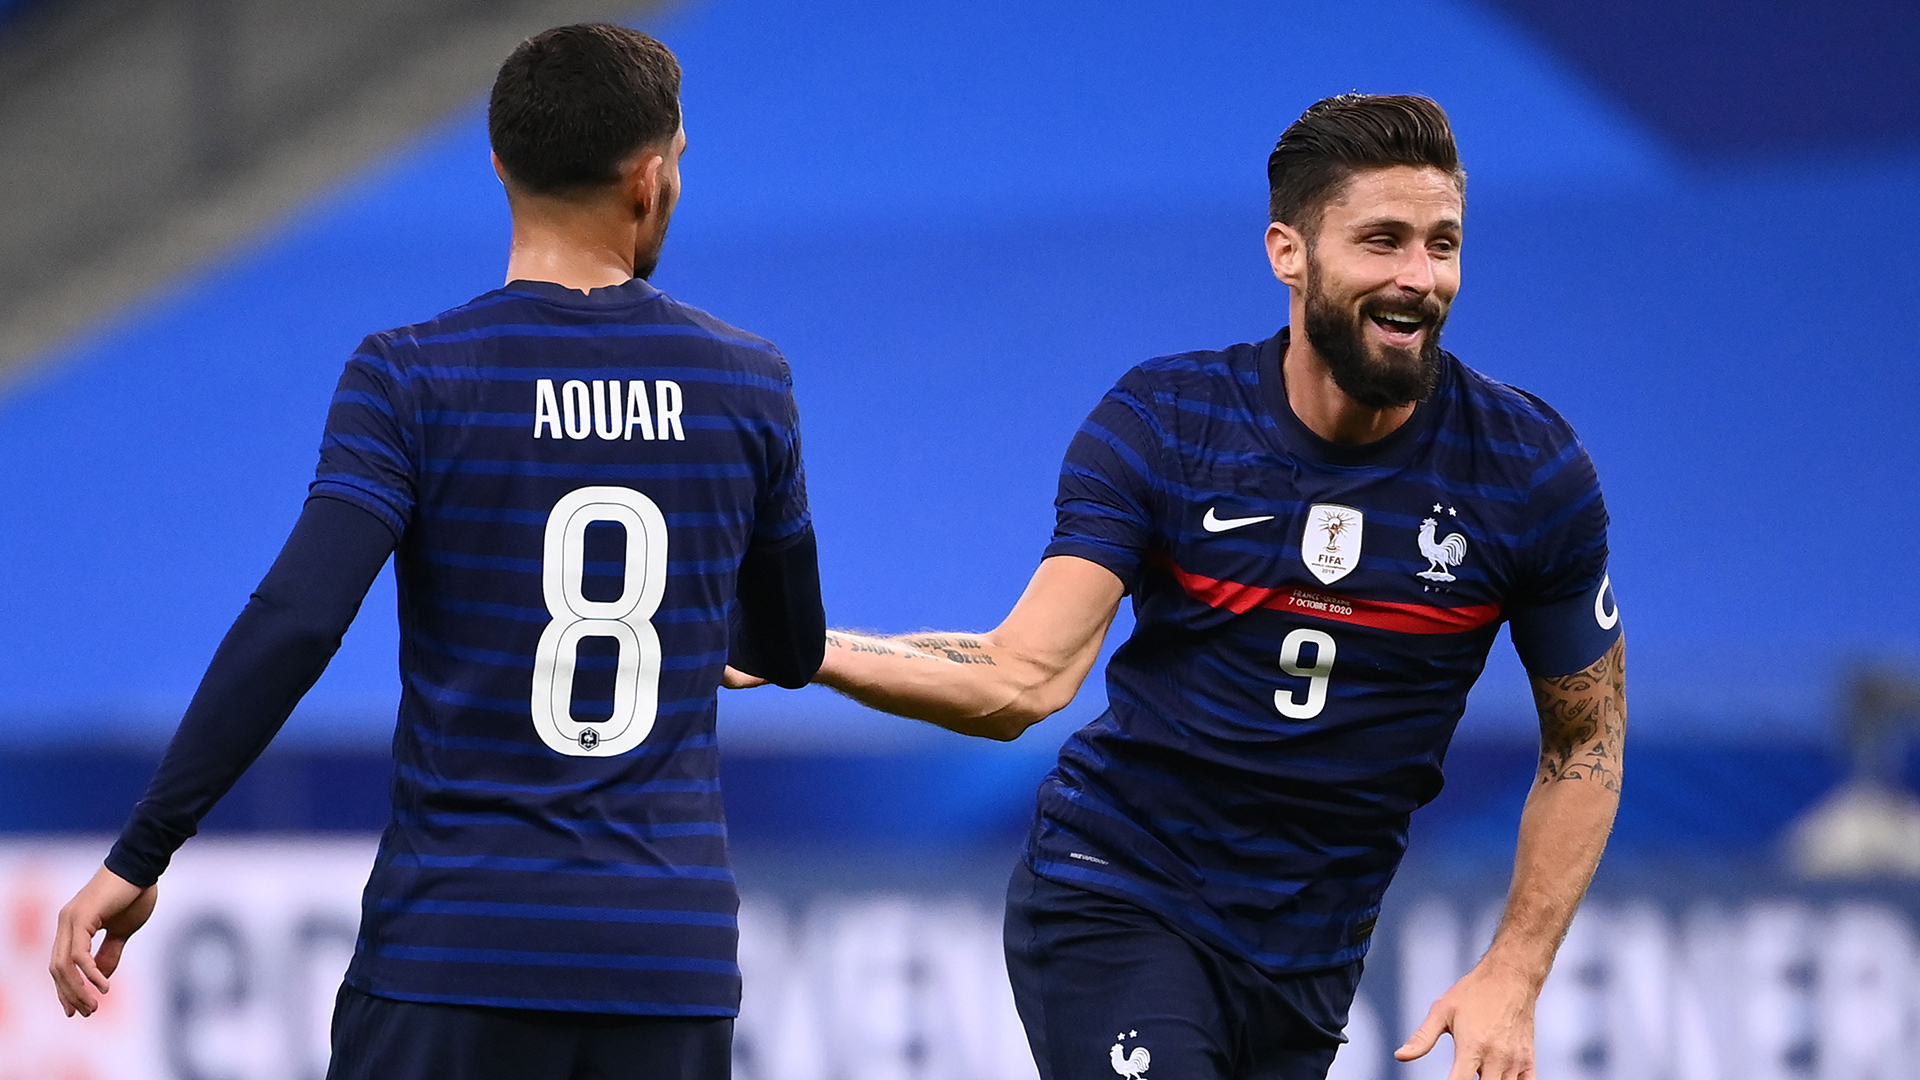 Giroud plays down chances to break Henry's all-time France scoring record